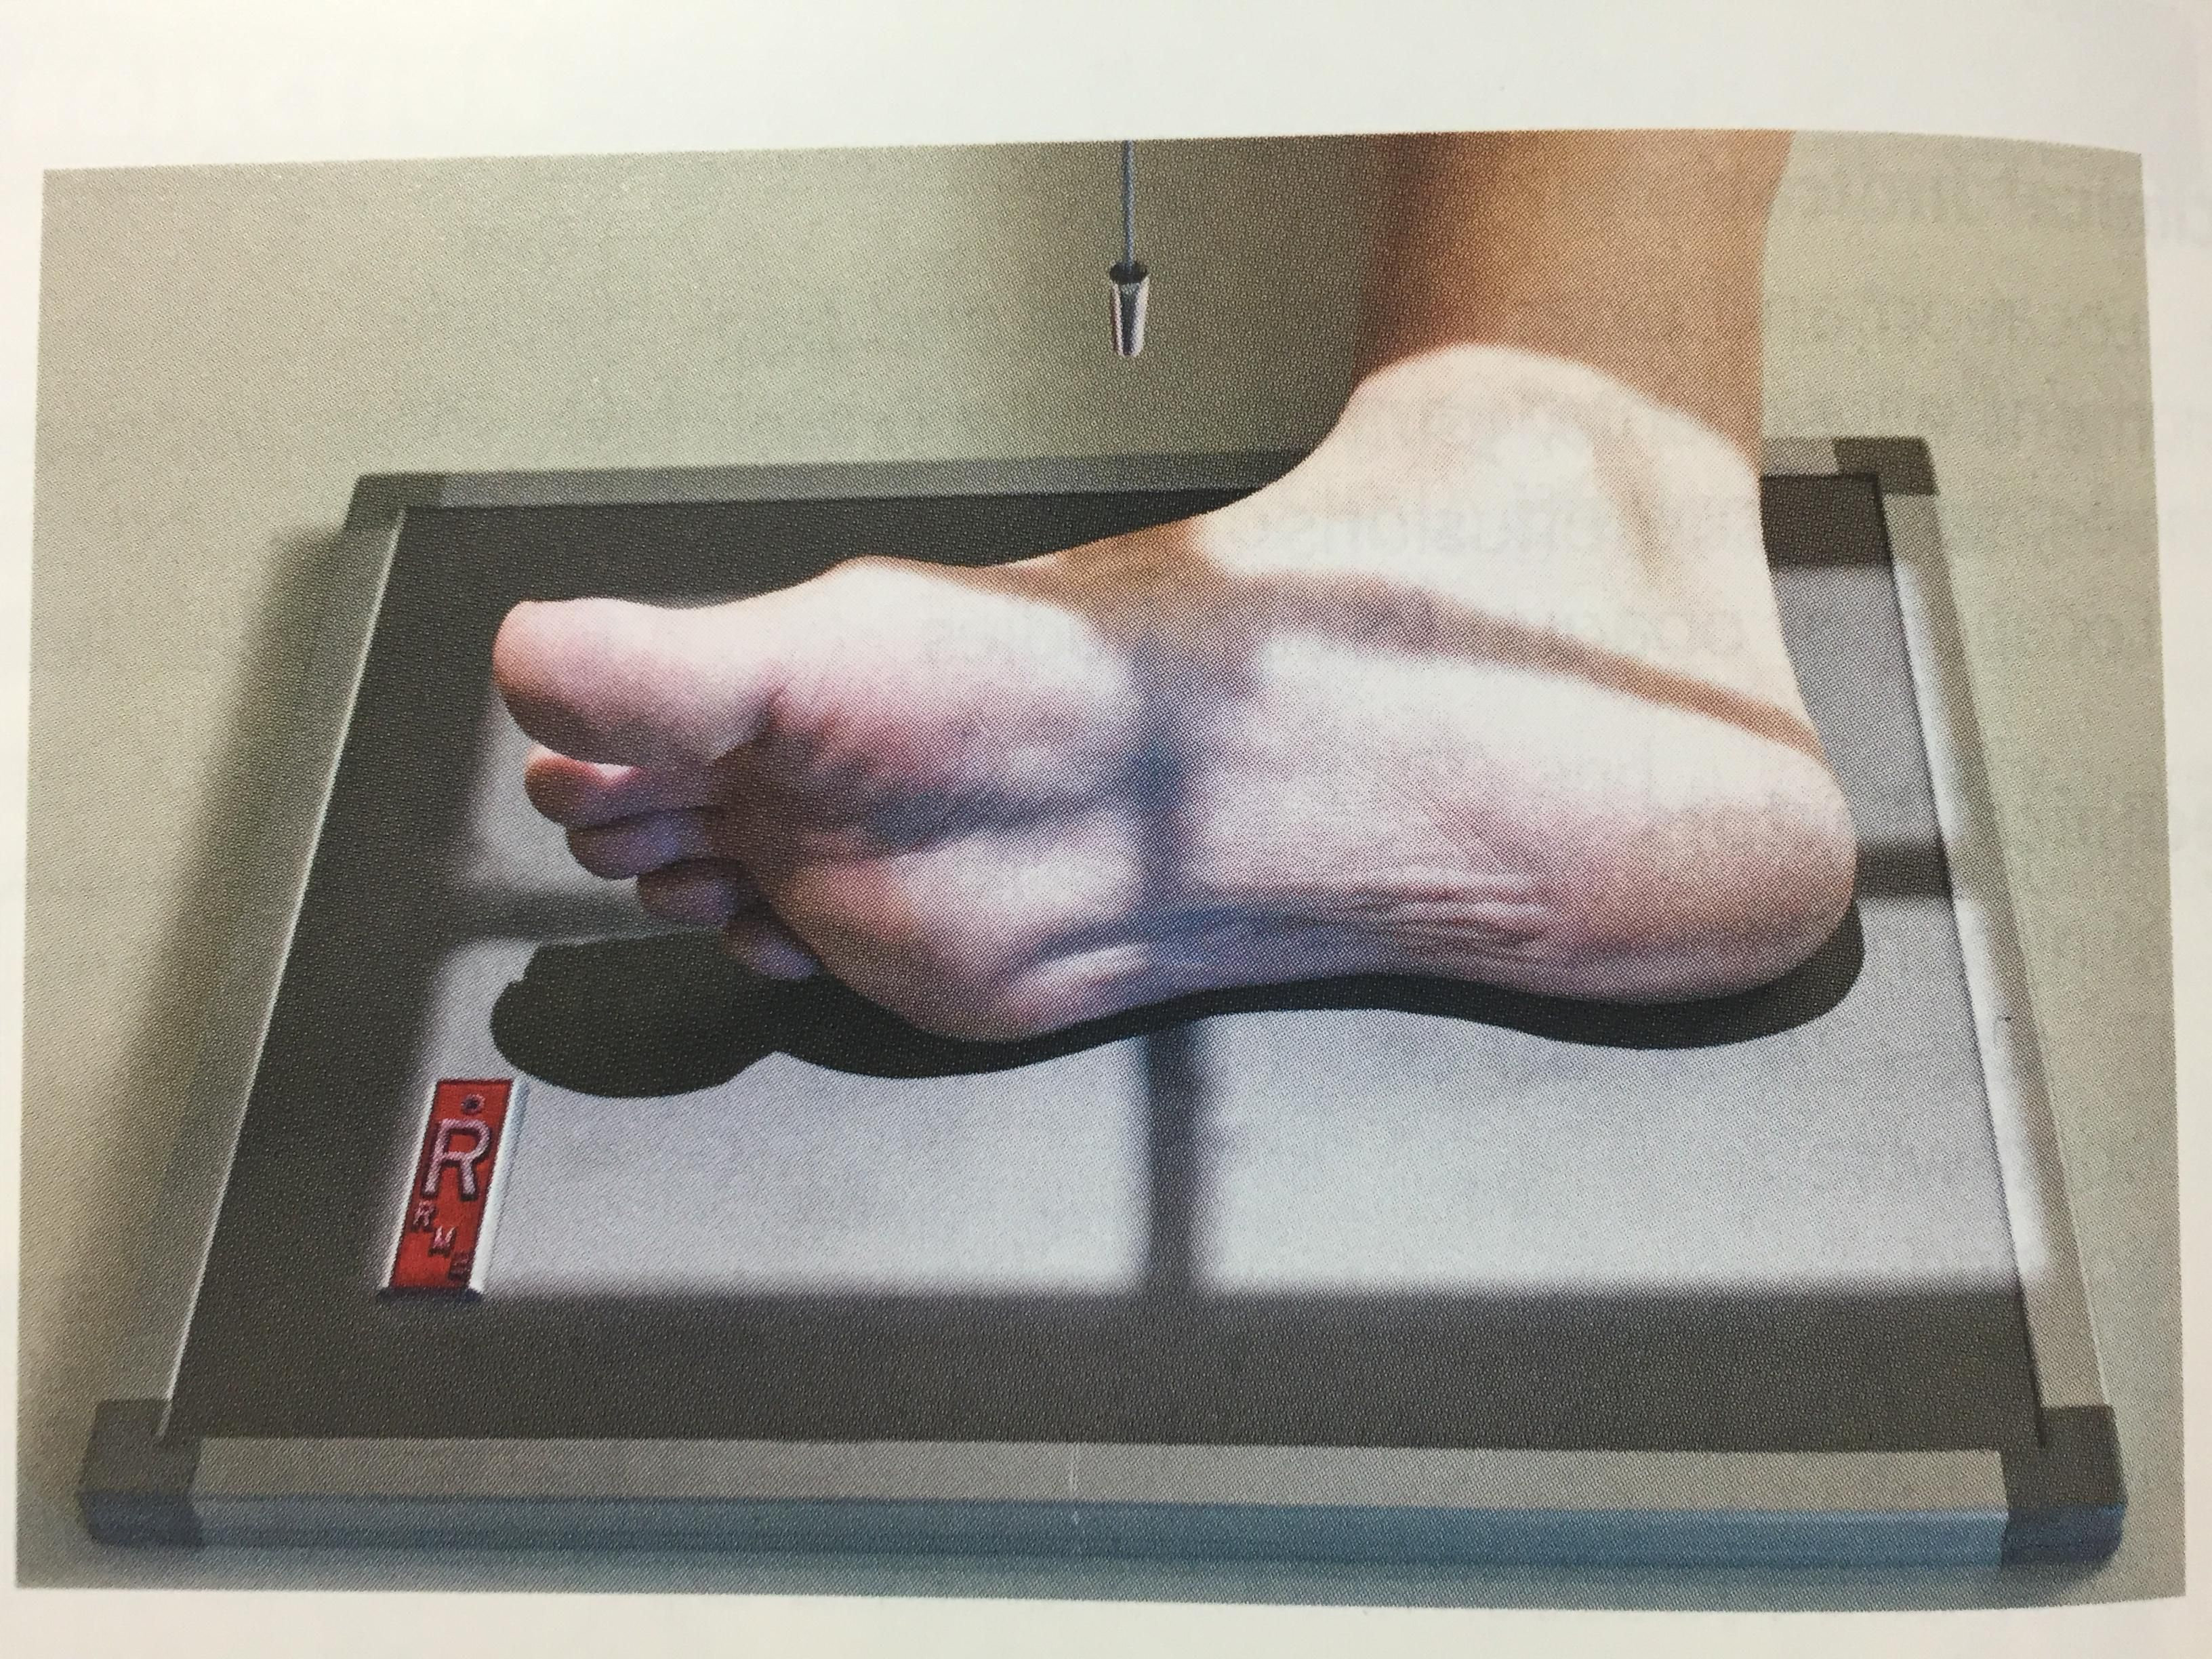 Positioning For Foot Lateral Xray